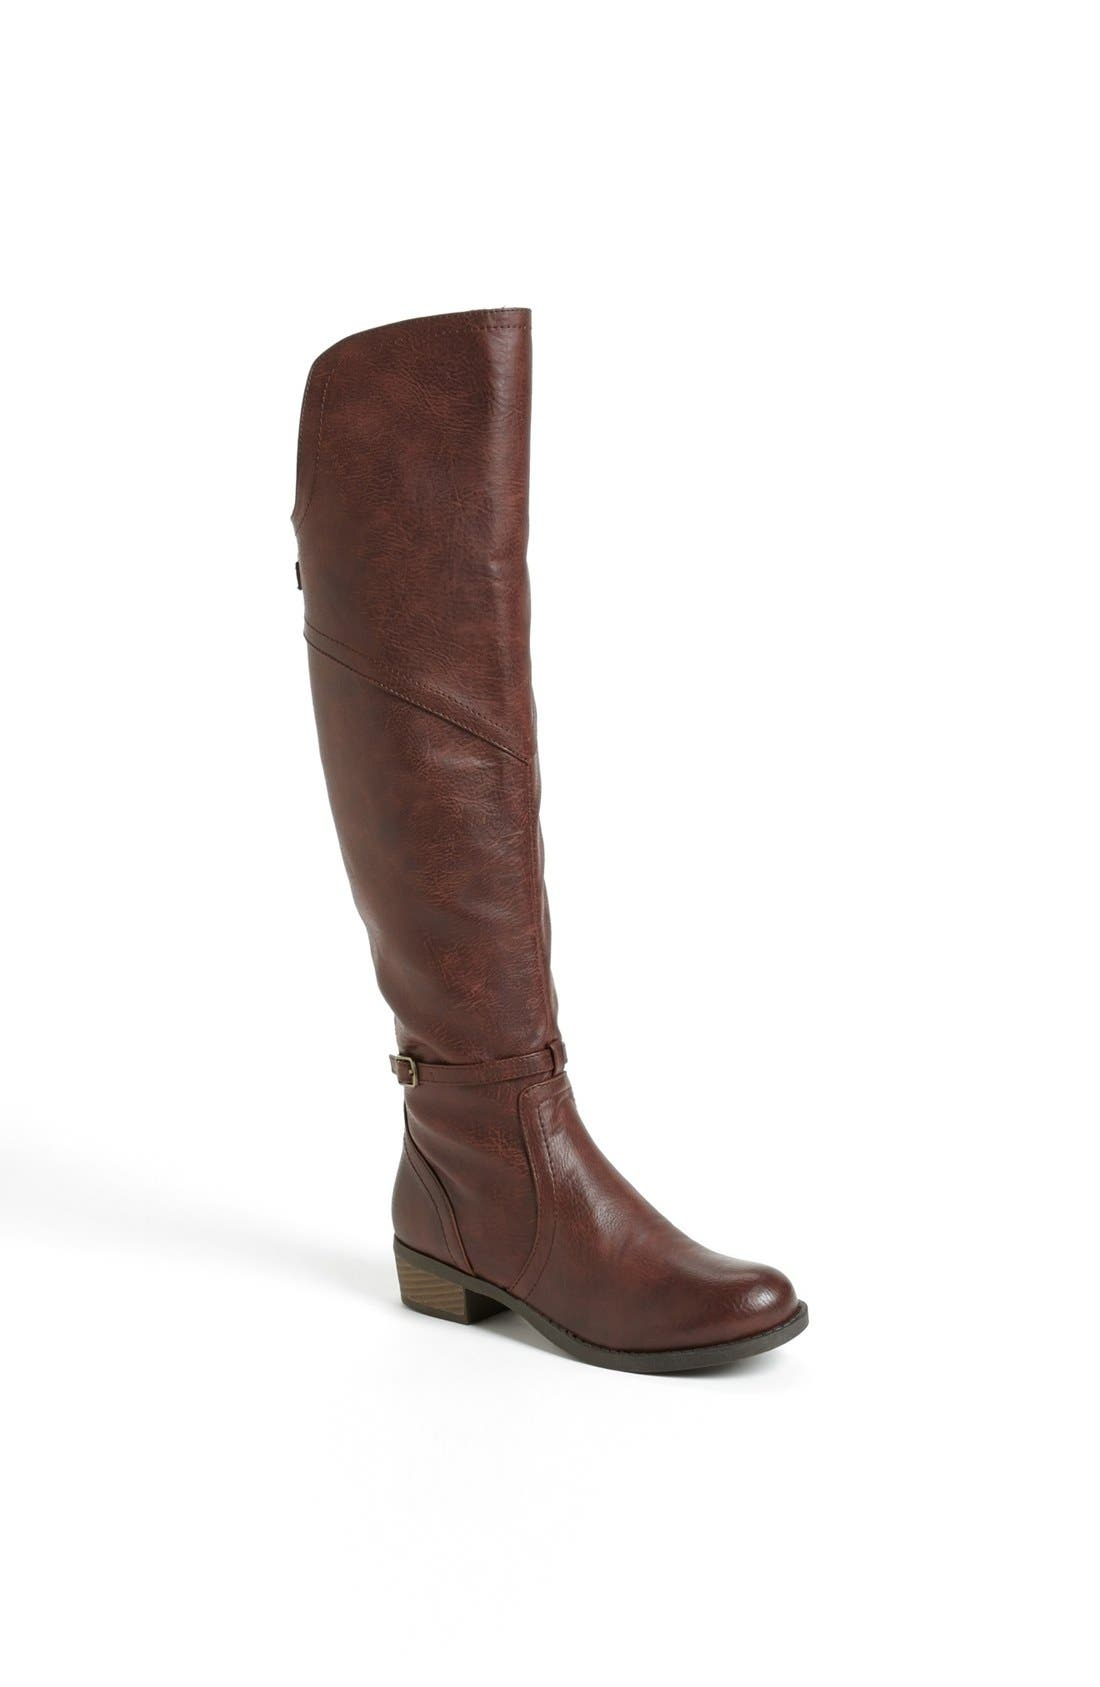 Main Image - BC Footwear 'Take Five' Over the Knee Boot